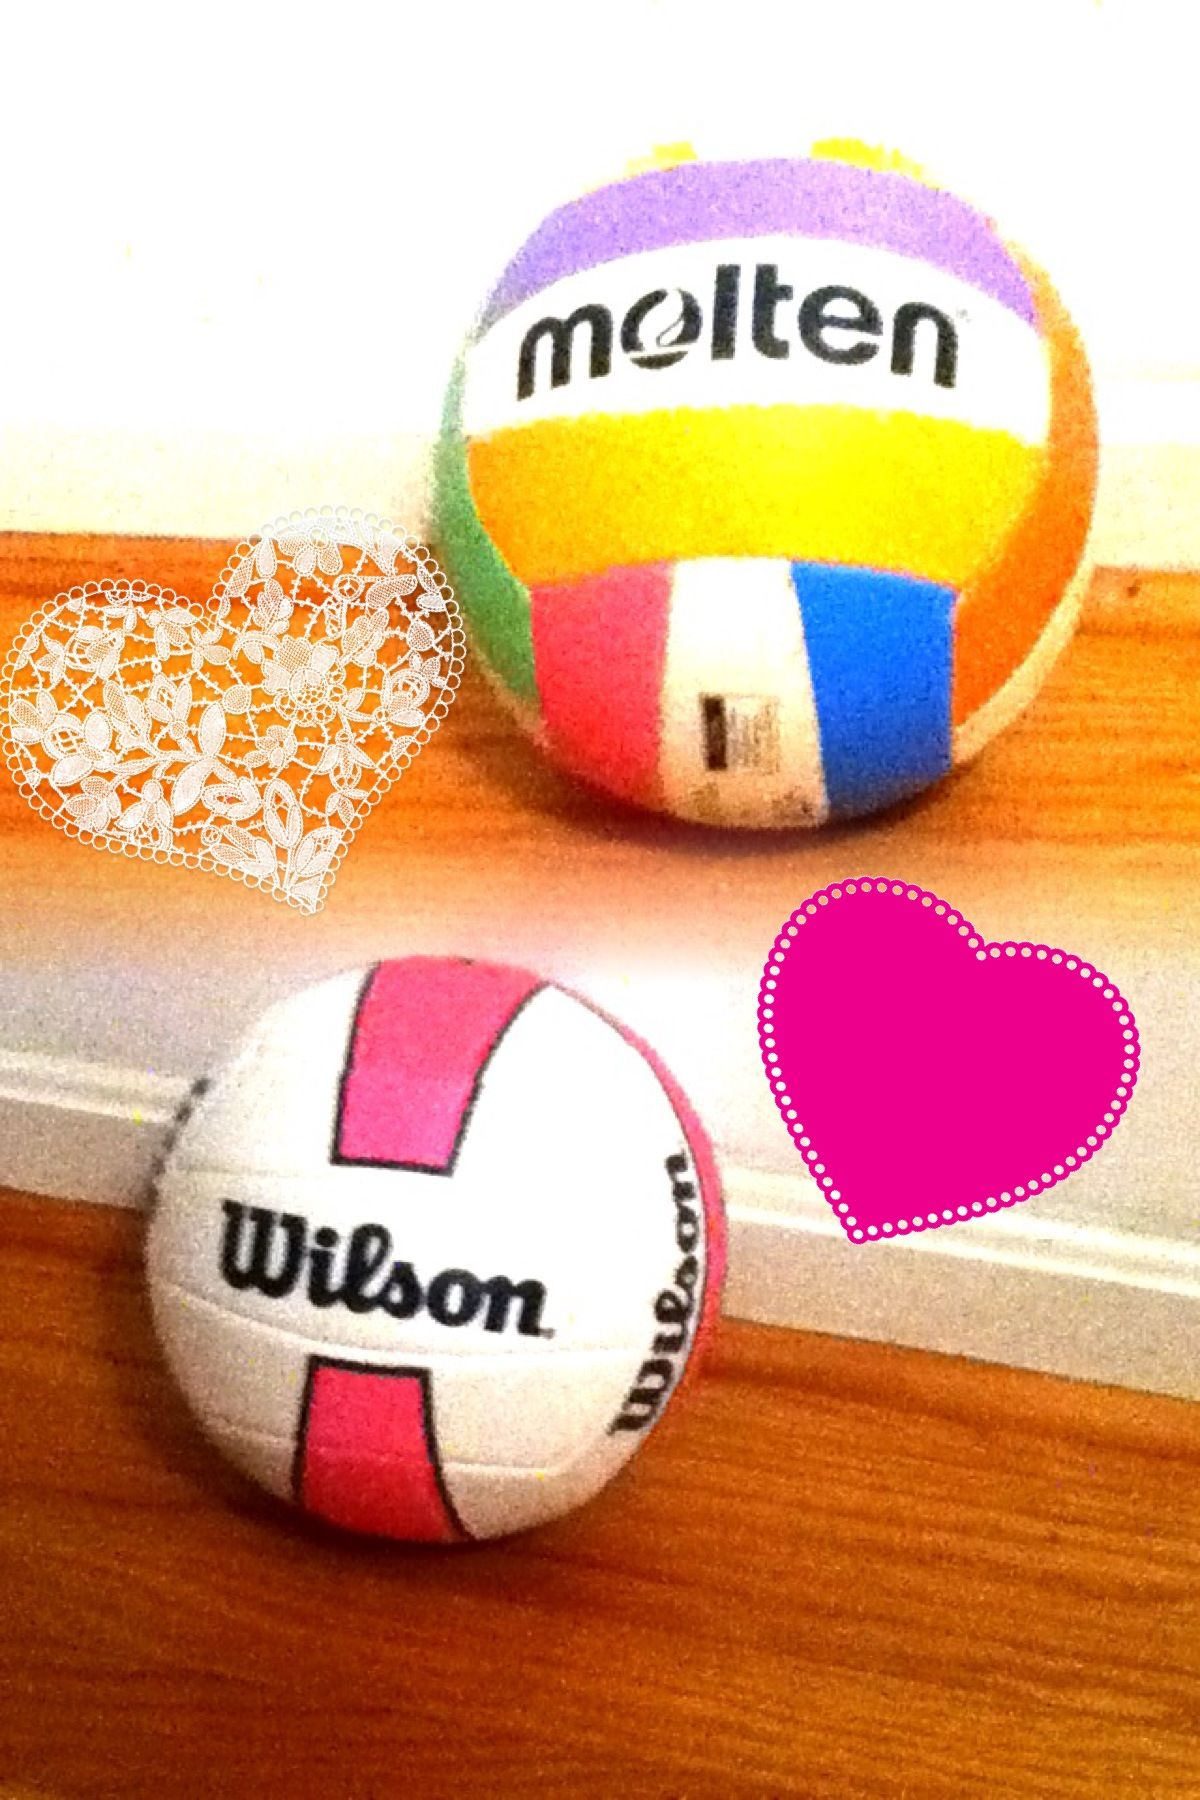 The Two Best Volleyball Brands In Love 3 Molten Usa Wilson Avp Volleyball Two By Two Soccer Ball